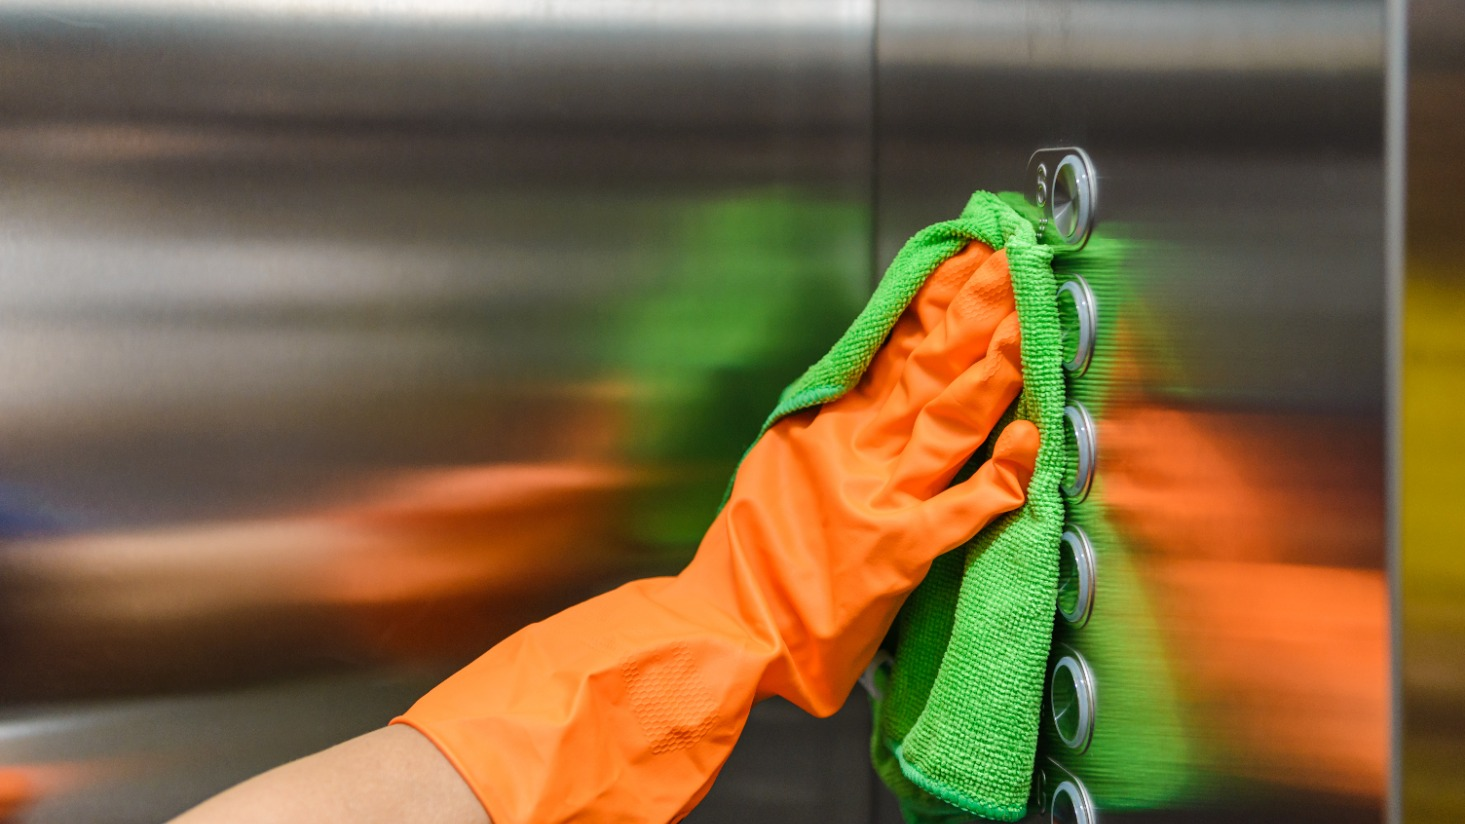 What tool should I use to clean: Microfiber cloth, cotton cloth, or paper towel?